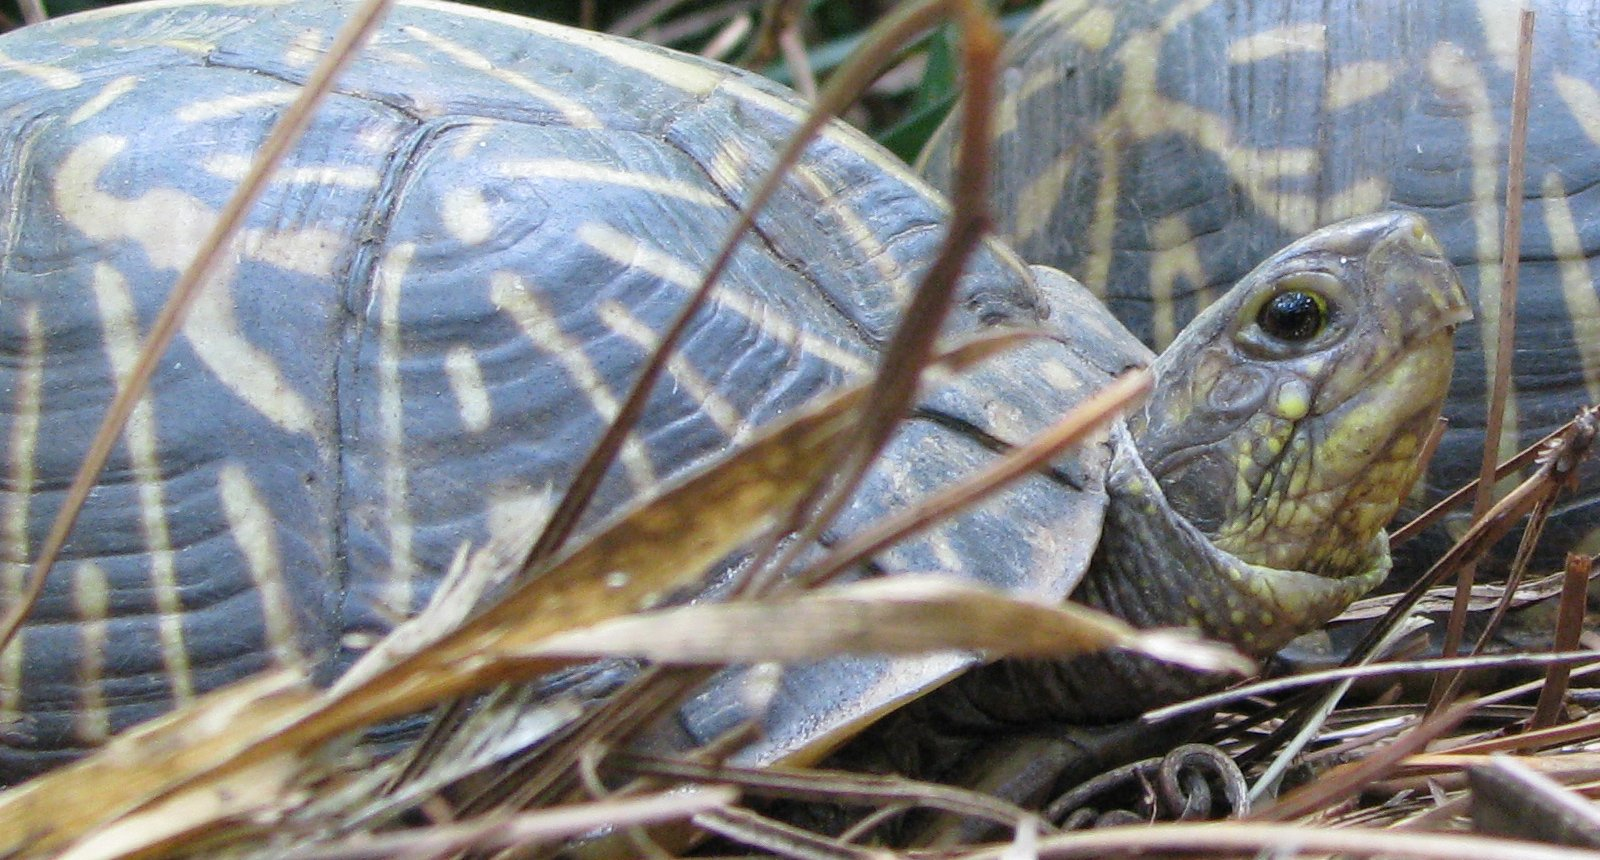 florida-box-turtle.jpg